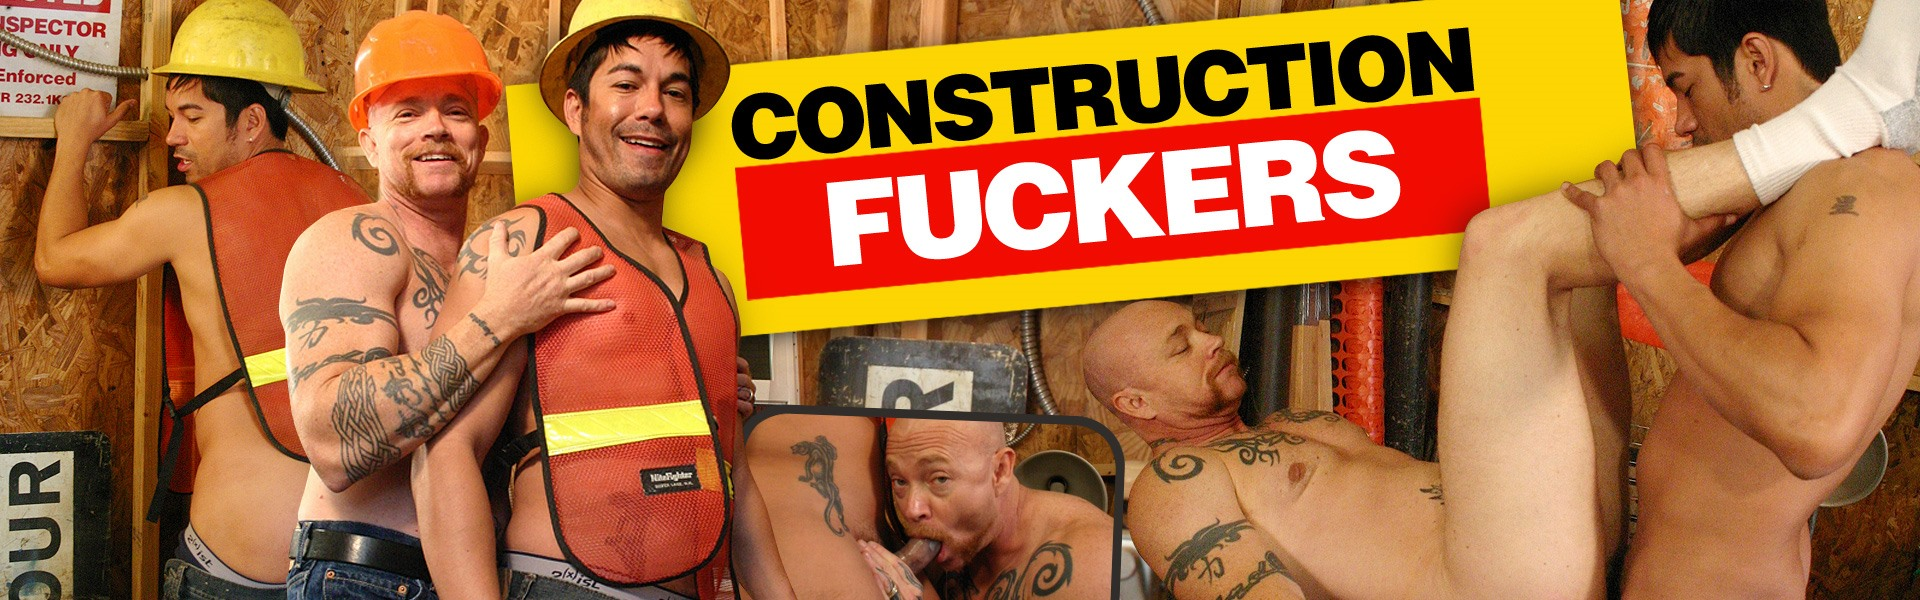 Construction Fuckers